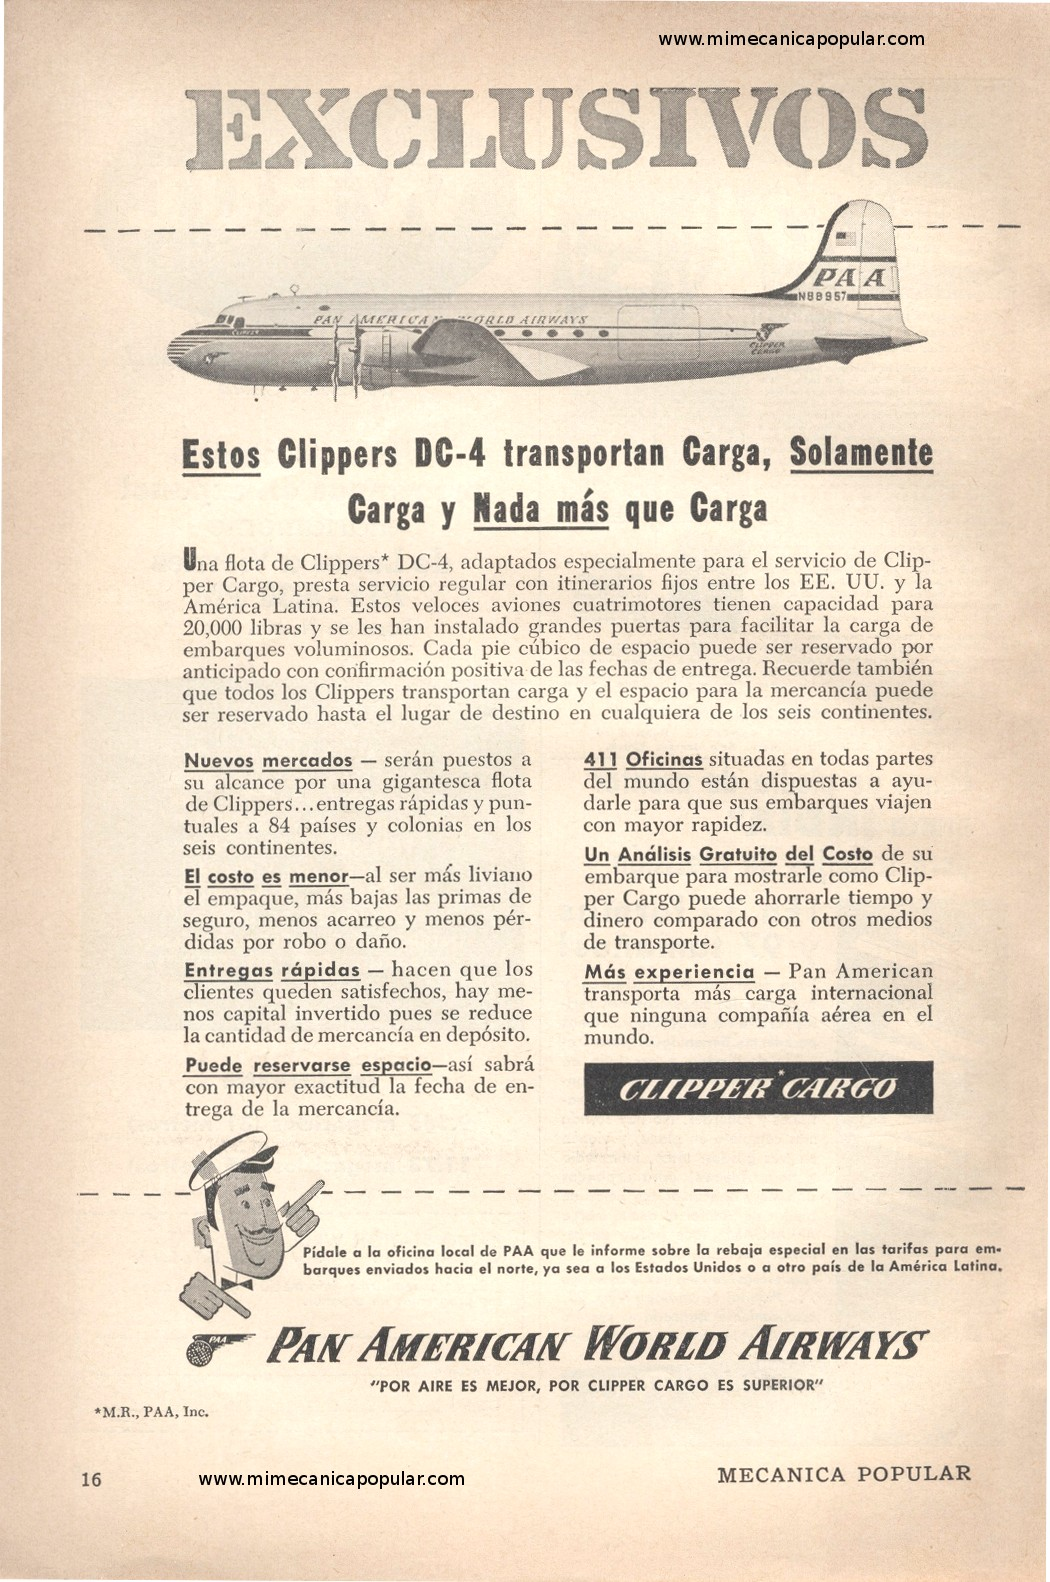 Publicidad - Clipper Cargo - Pan American World Airways - Marzo 1954